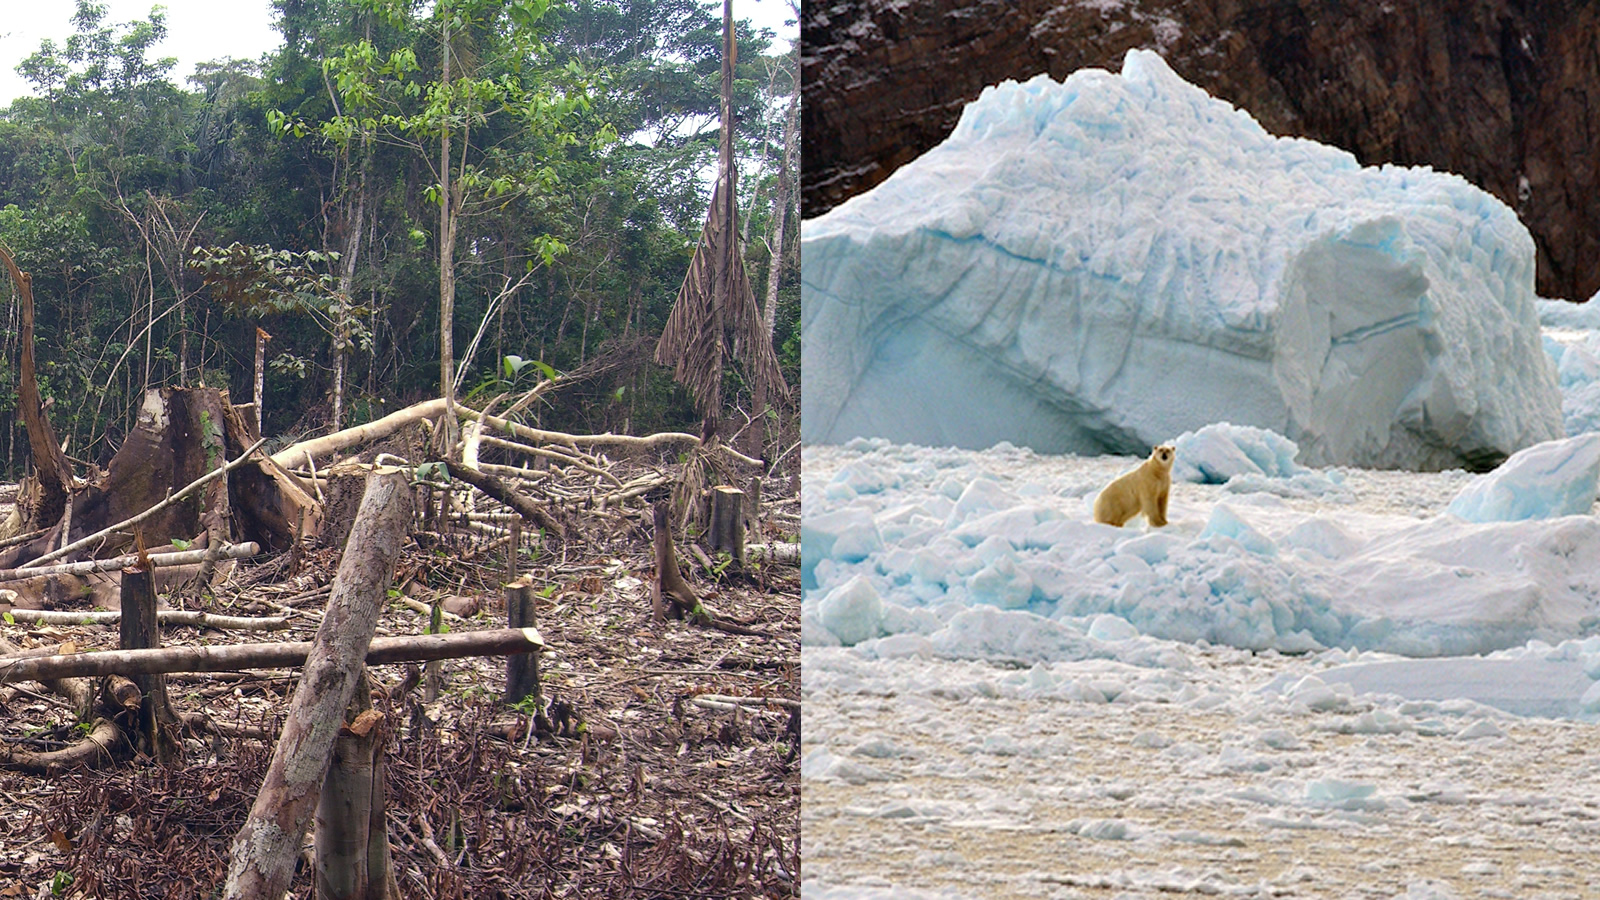 <h4>ACCELERATING GLOBAL WARMING</h4><h5>Scientists estimate that razing forests to make way for crops or cattle accounts for 10-15 percent of the pollution that's warming the planet and changing the climate.</h5><em>Matt Zimmerman via flickr /cc-by-2.0, NASA's Ocean Melting Greenland Mission</em>